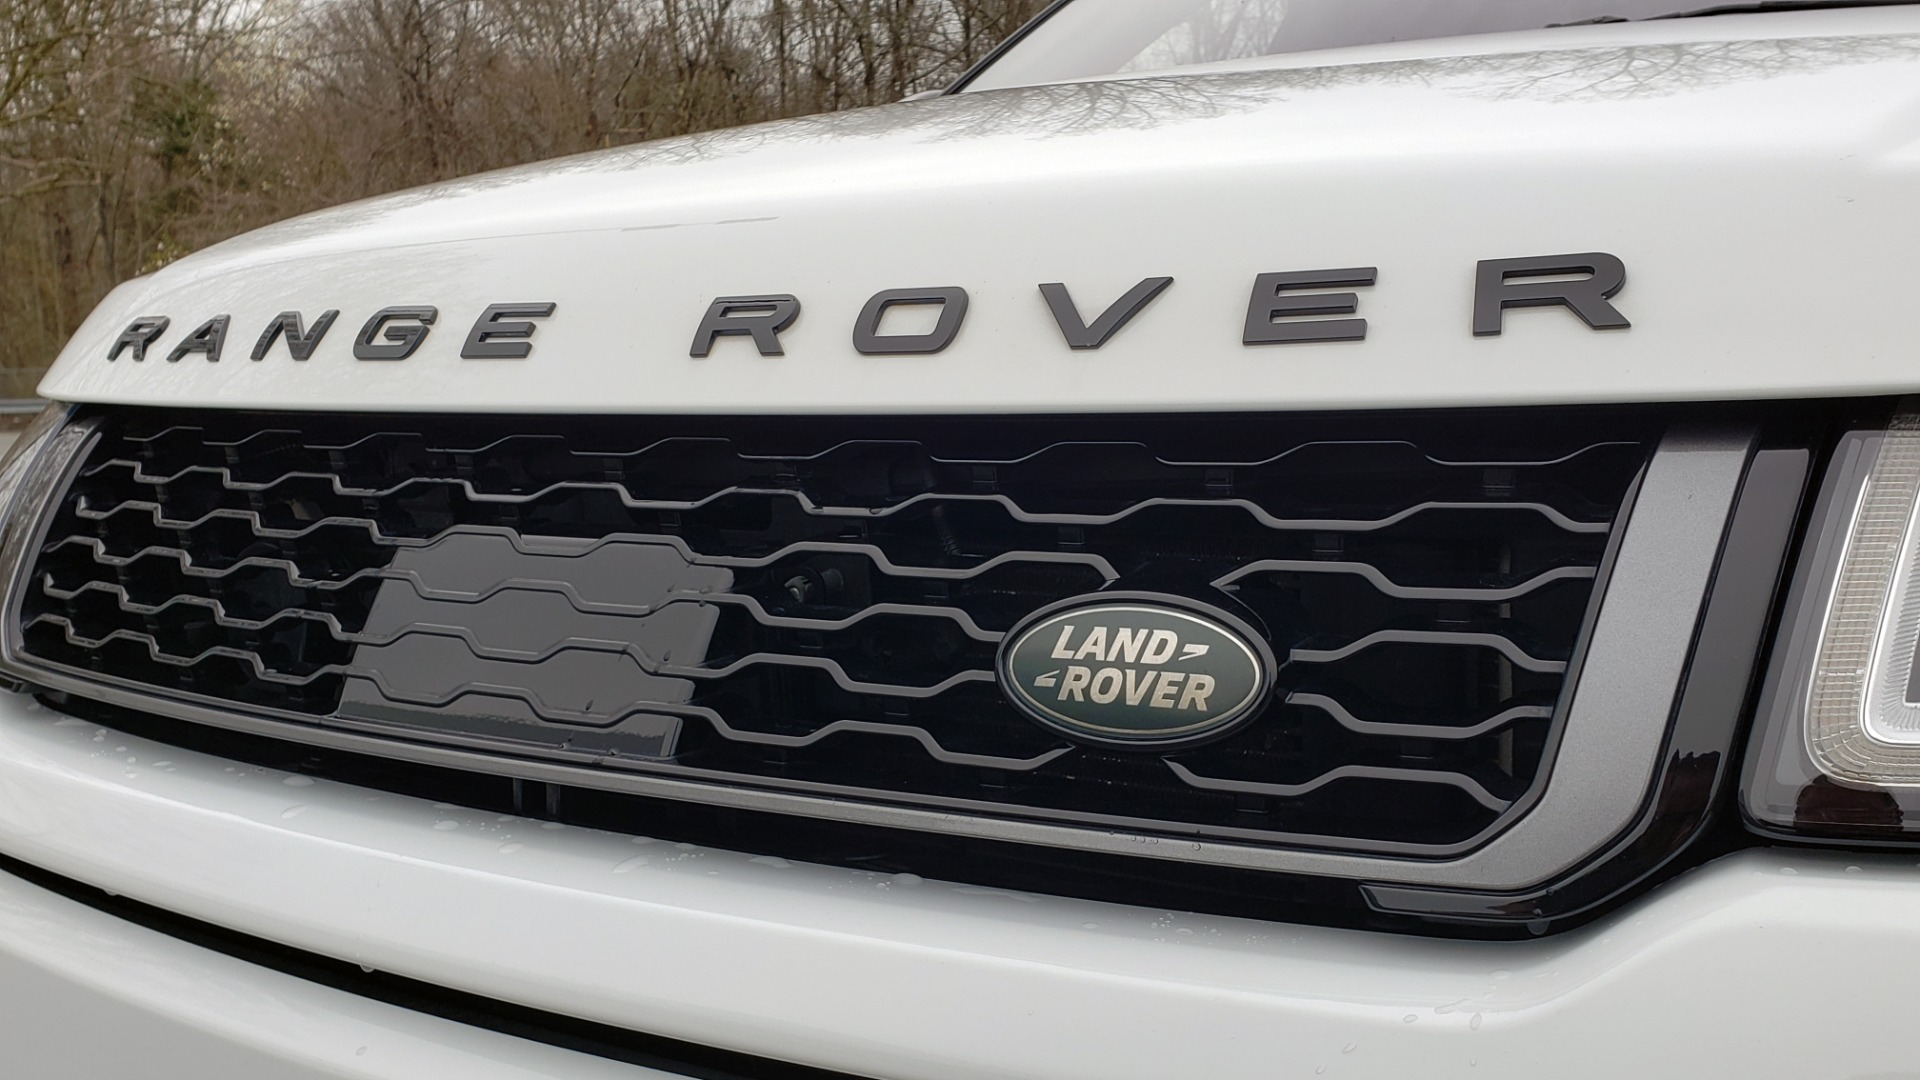 Used 2016 Land Rover RANGE ROVER EVOQUE HSE DYNAMIC / AWD / NAV / PANO-ROOF / REARVIEW / 22-IN WHEELS for sale Sold at Formula Imports in Charlotte NC 28227 27